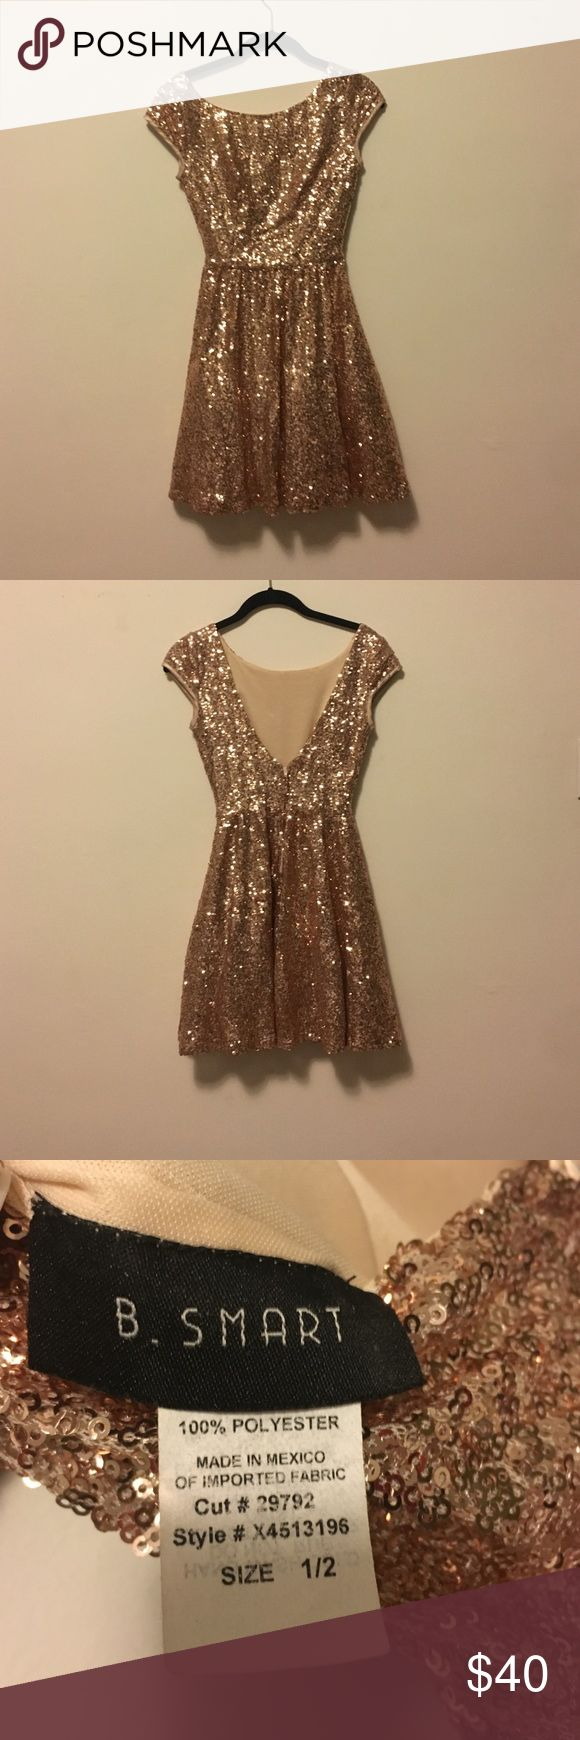 Gold Sequin Cocktail Dress CUTE, short, sequin, v-back cocktail dress. Short sleeved with zipped in the back and a petticoat underneath. Worn once. B. SMART Dresses